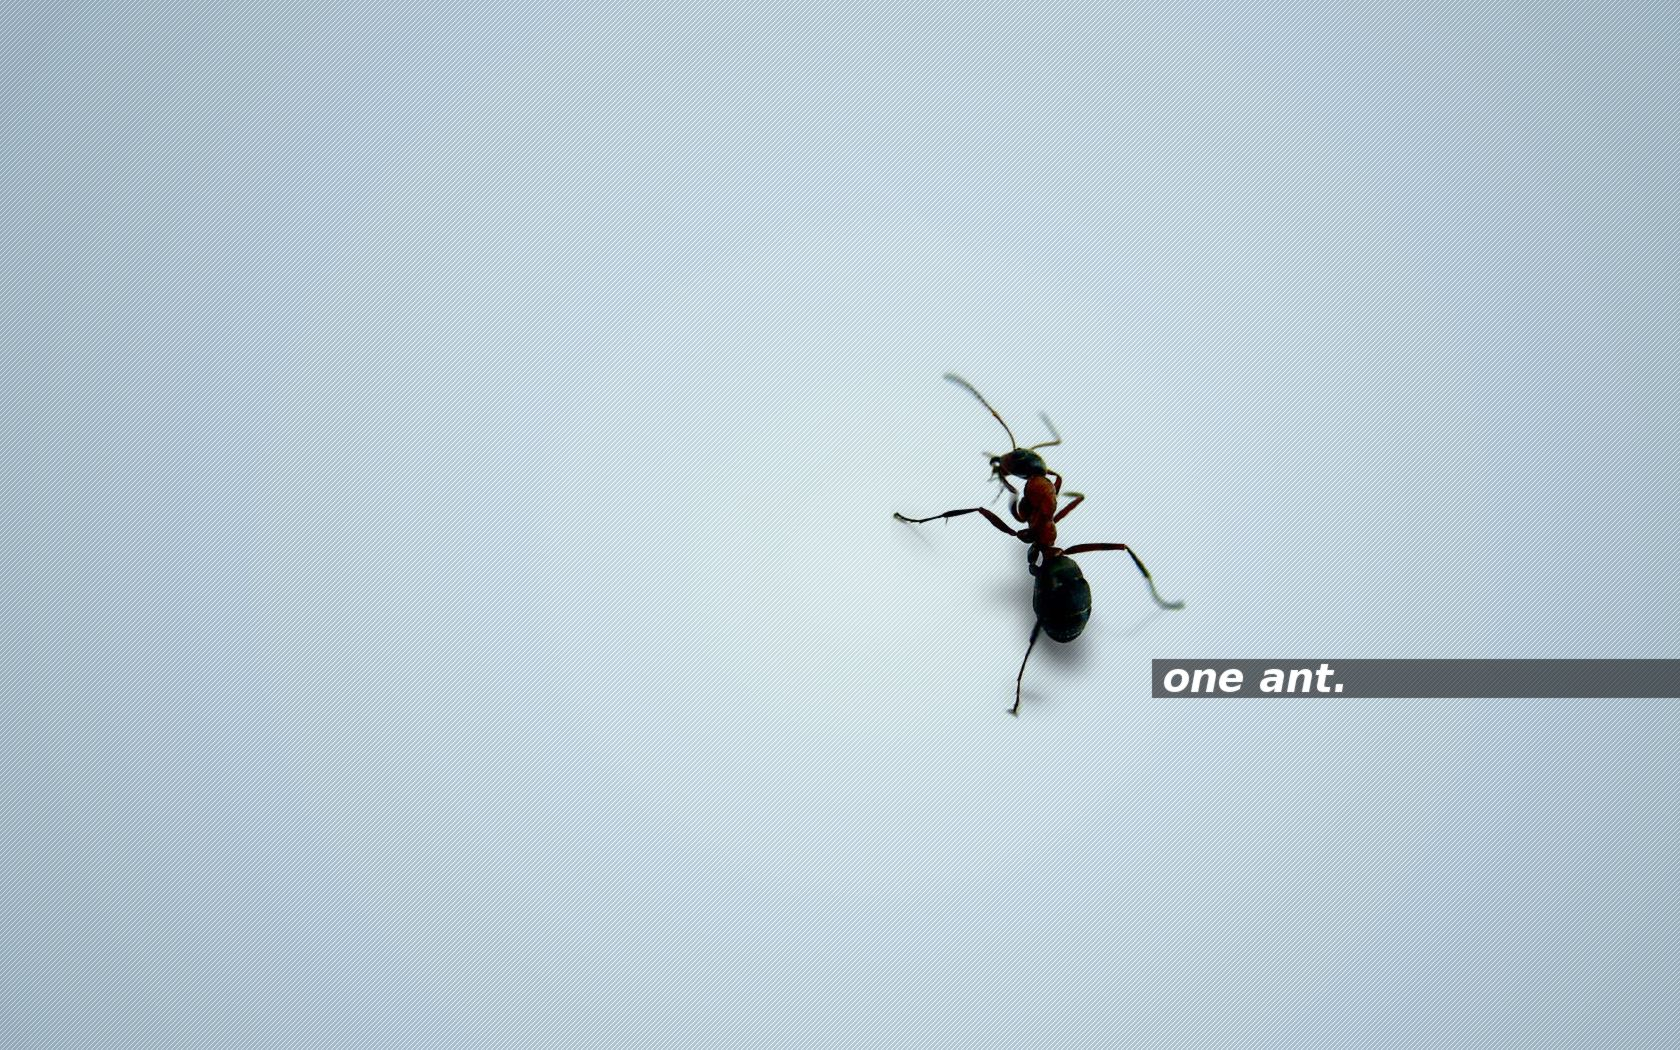 one ant. brightblue by 10r